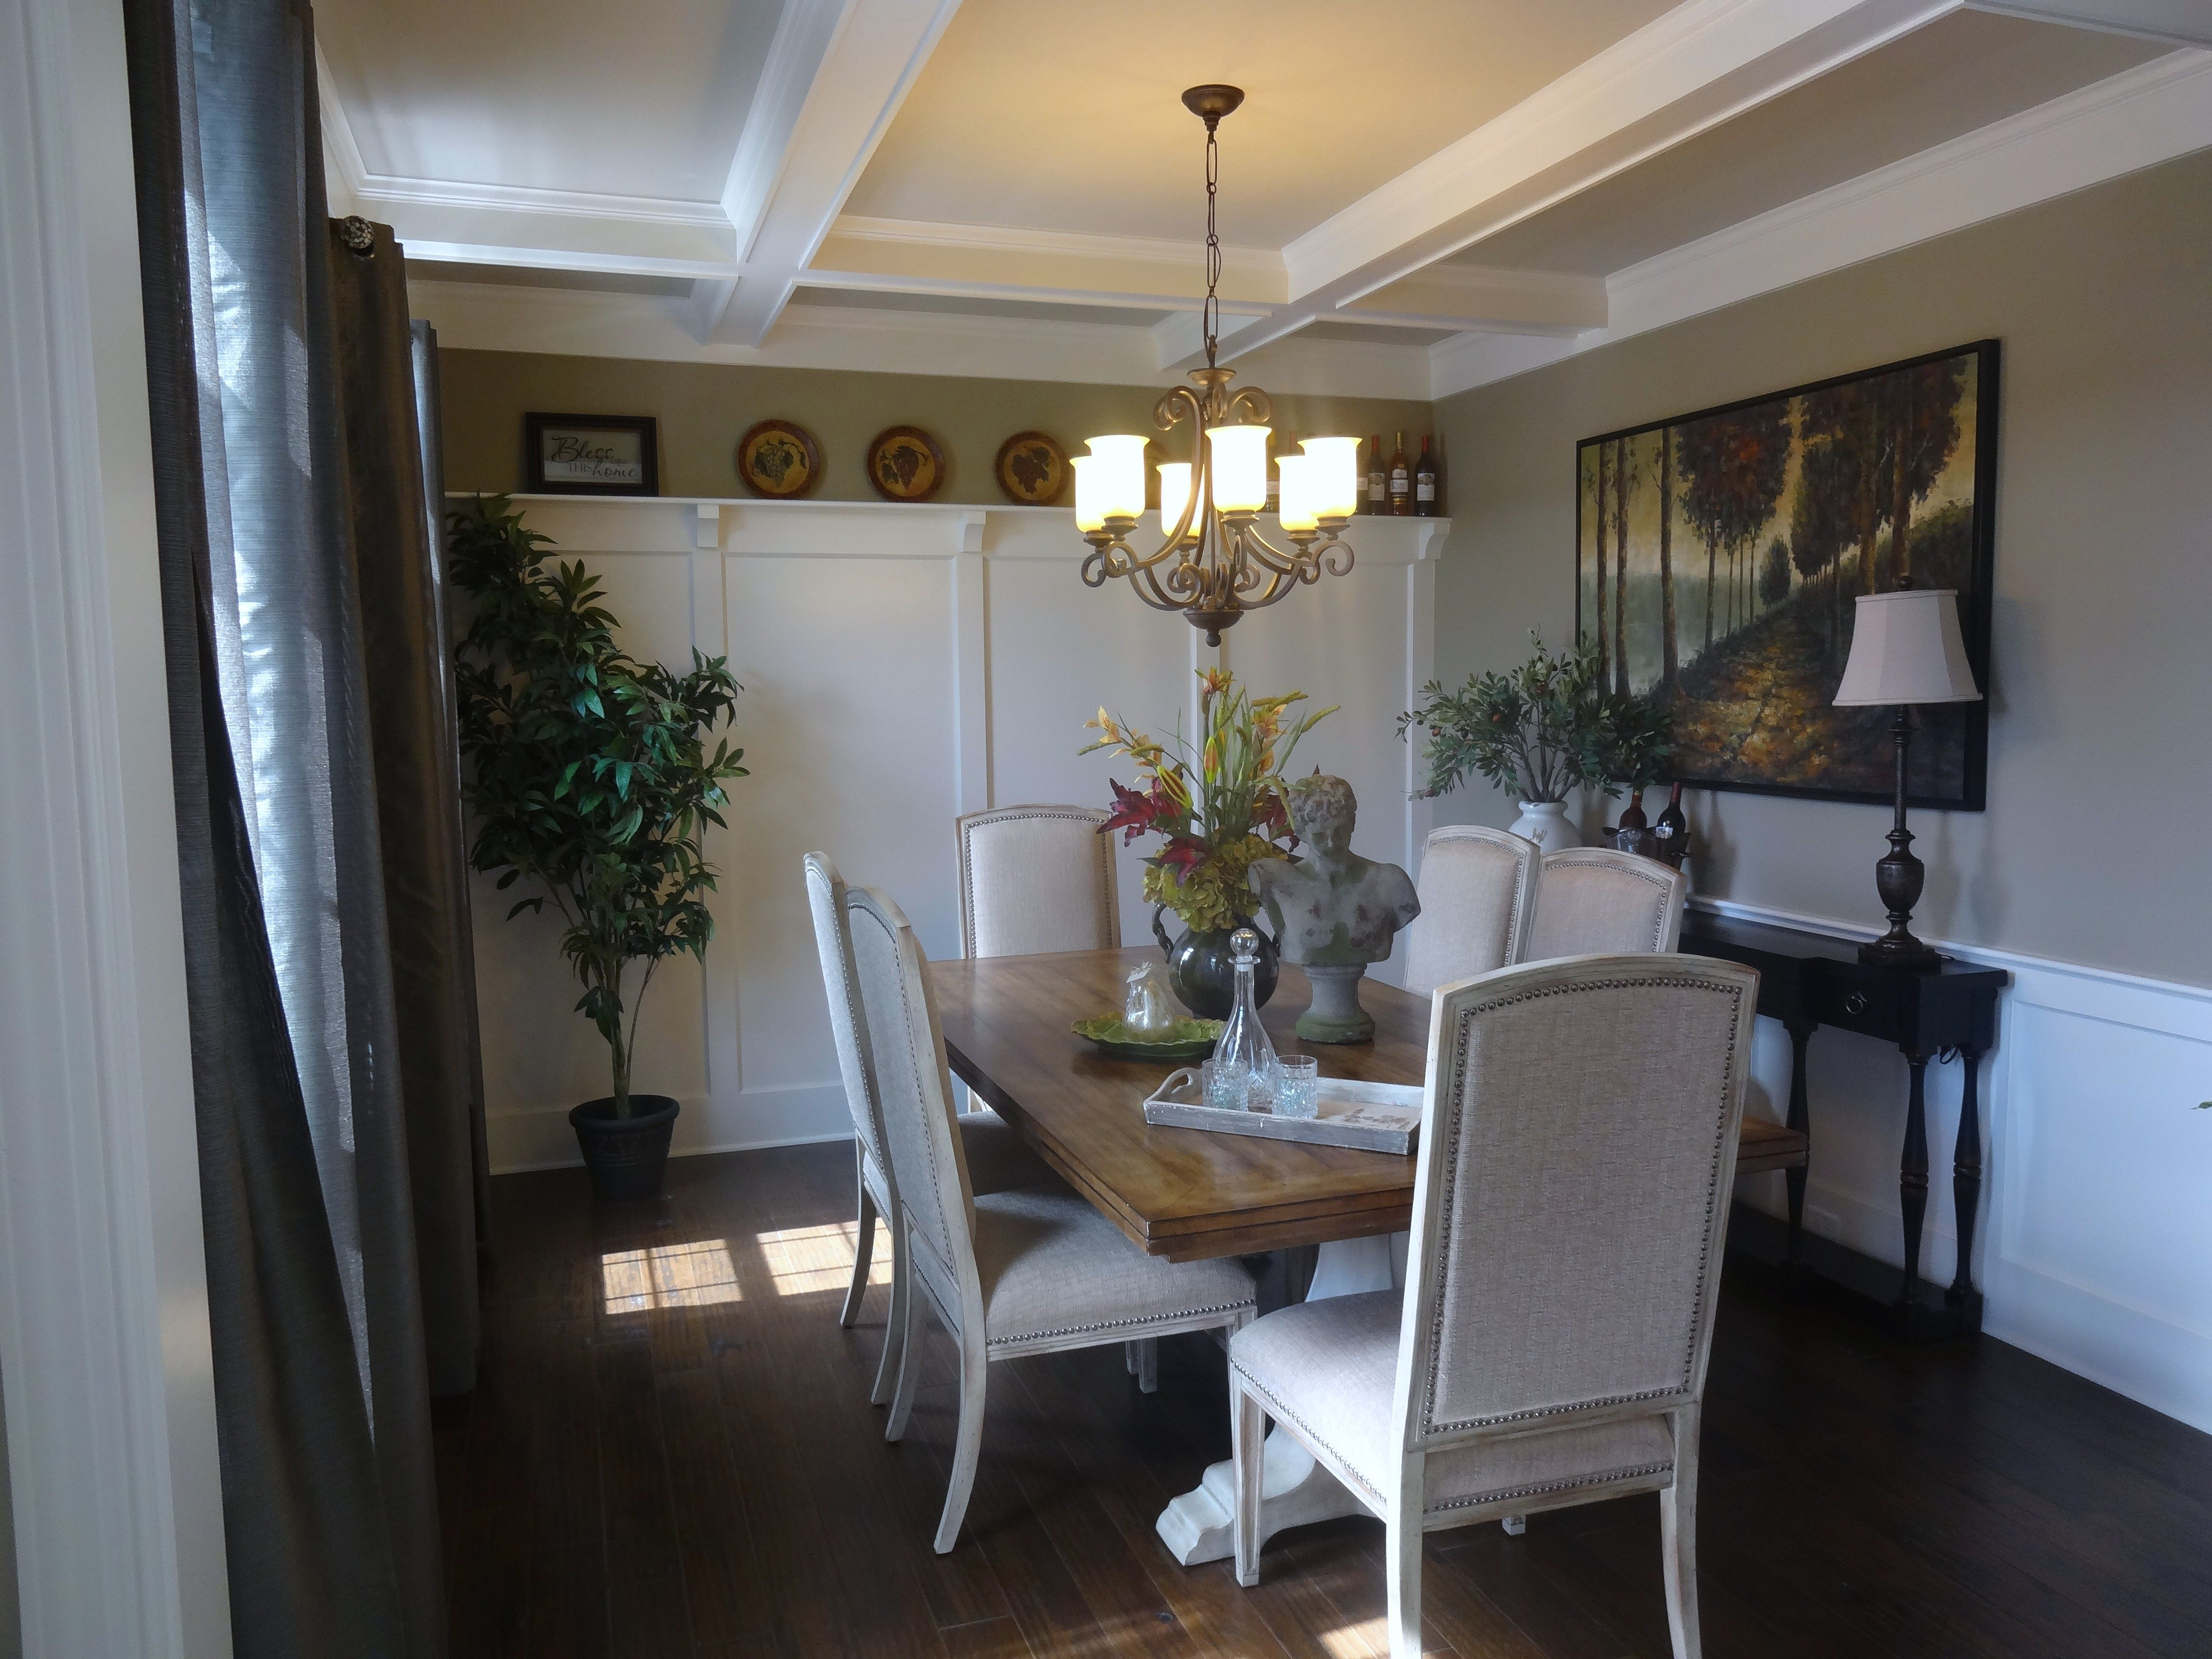 Paint Color In Dining Room: Kingu0027s Canyon Grey (Glidden A1868) At 5992 Three